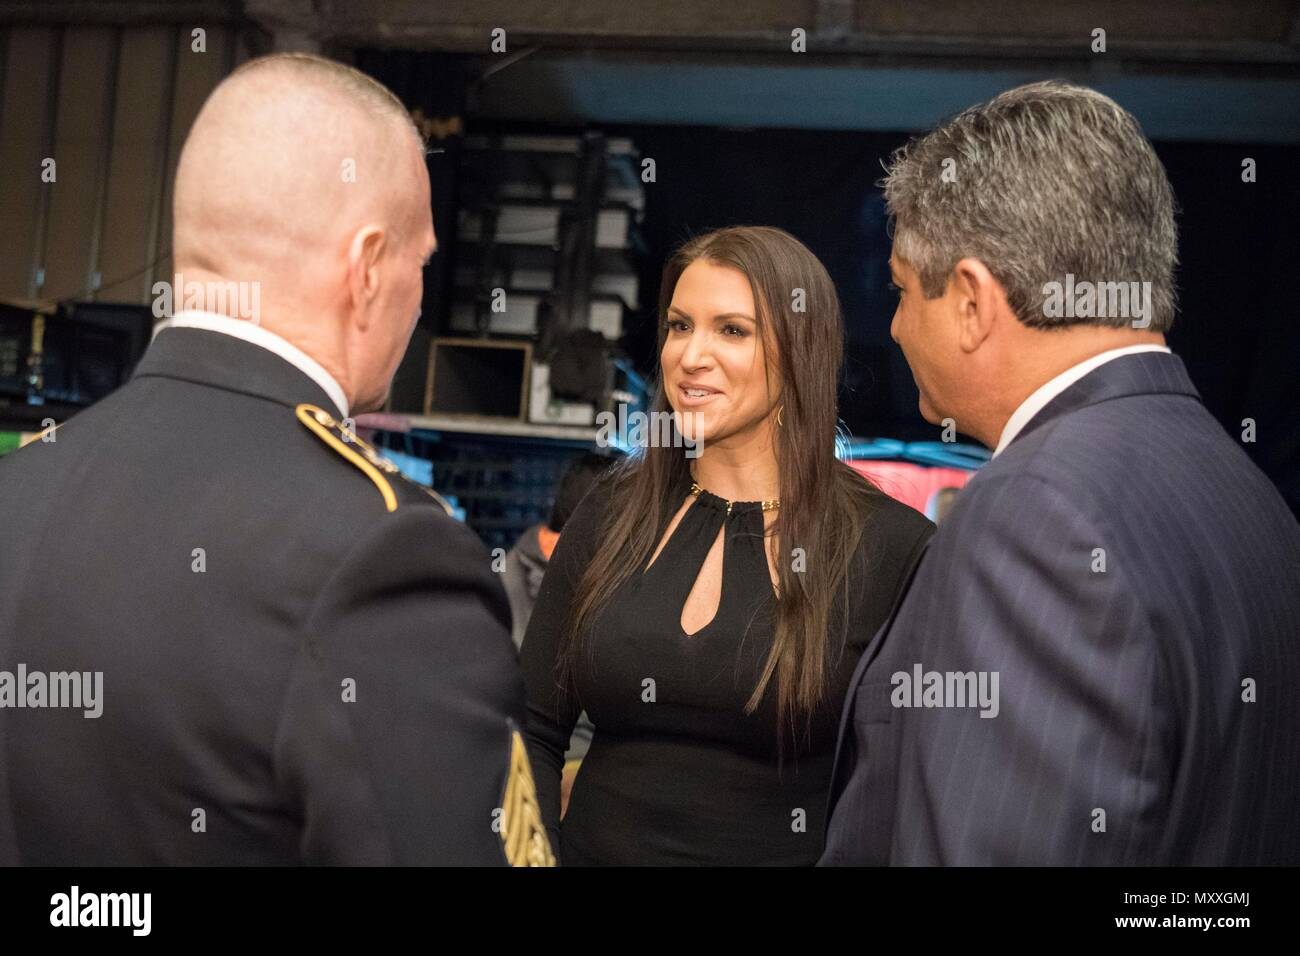 Army Command Sgt. Maj. John W. Troxell, Senior Enlisted Advisor to the Chairman of the Joint Chiefs of Staff, speaks to Stephanie McMahon, Wrestler and Chief Brand Officer of WWE, backstage during the 14th Annual Tribute to the Troops Event at the Verizon Center in Washington, D.C., Dec. 13, 2016. WWE Tribute to the Troops is an annual event held by WWE and Armed Forces Entertainment in December during the holiday season since 2003, to honor and entertain United States Armed Forces members. WWE performers and employees travel to military camps, bases and hospitals, including the Walter Reed Ar - Stock Image